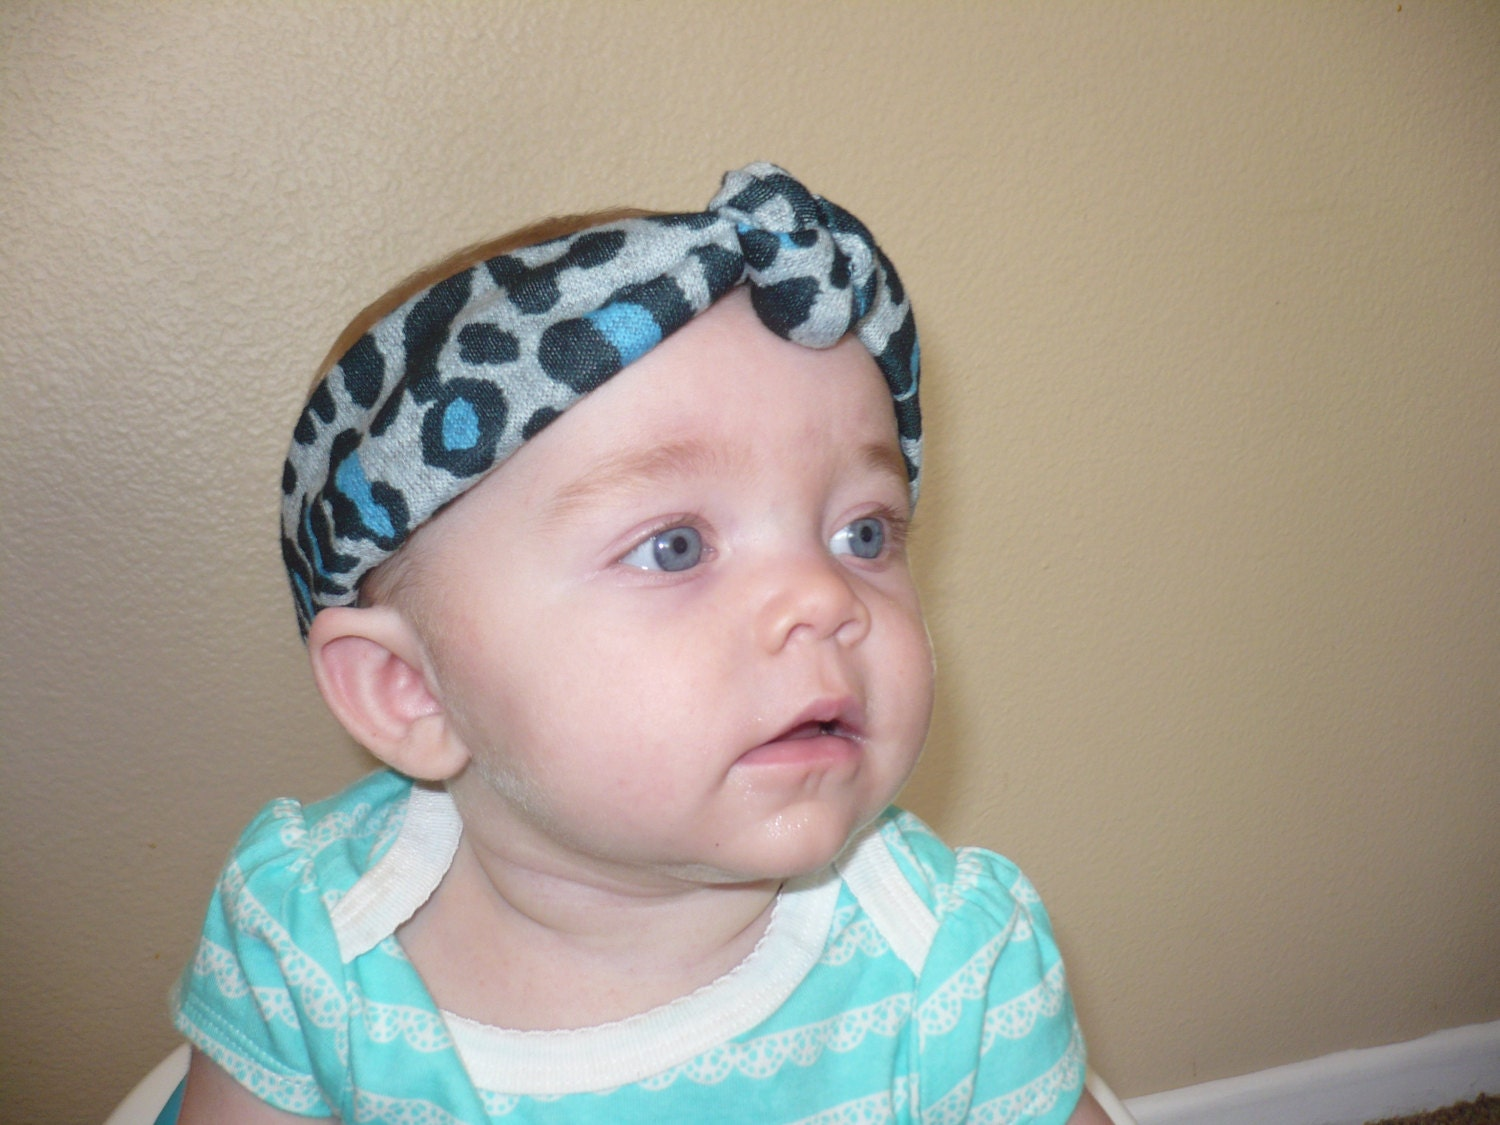 ... 293 New baby headband for flat head 740 Baby Turban Headband Baby Girl  Headband Baby by ... 23a93174931